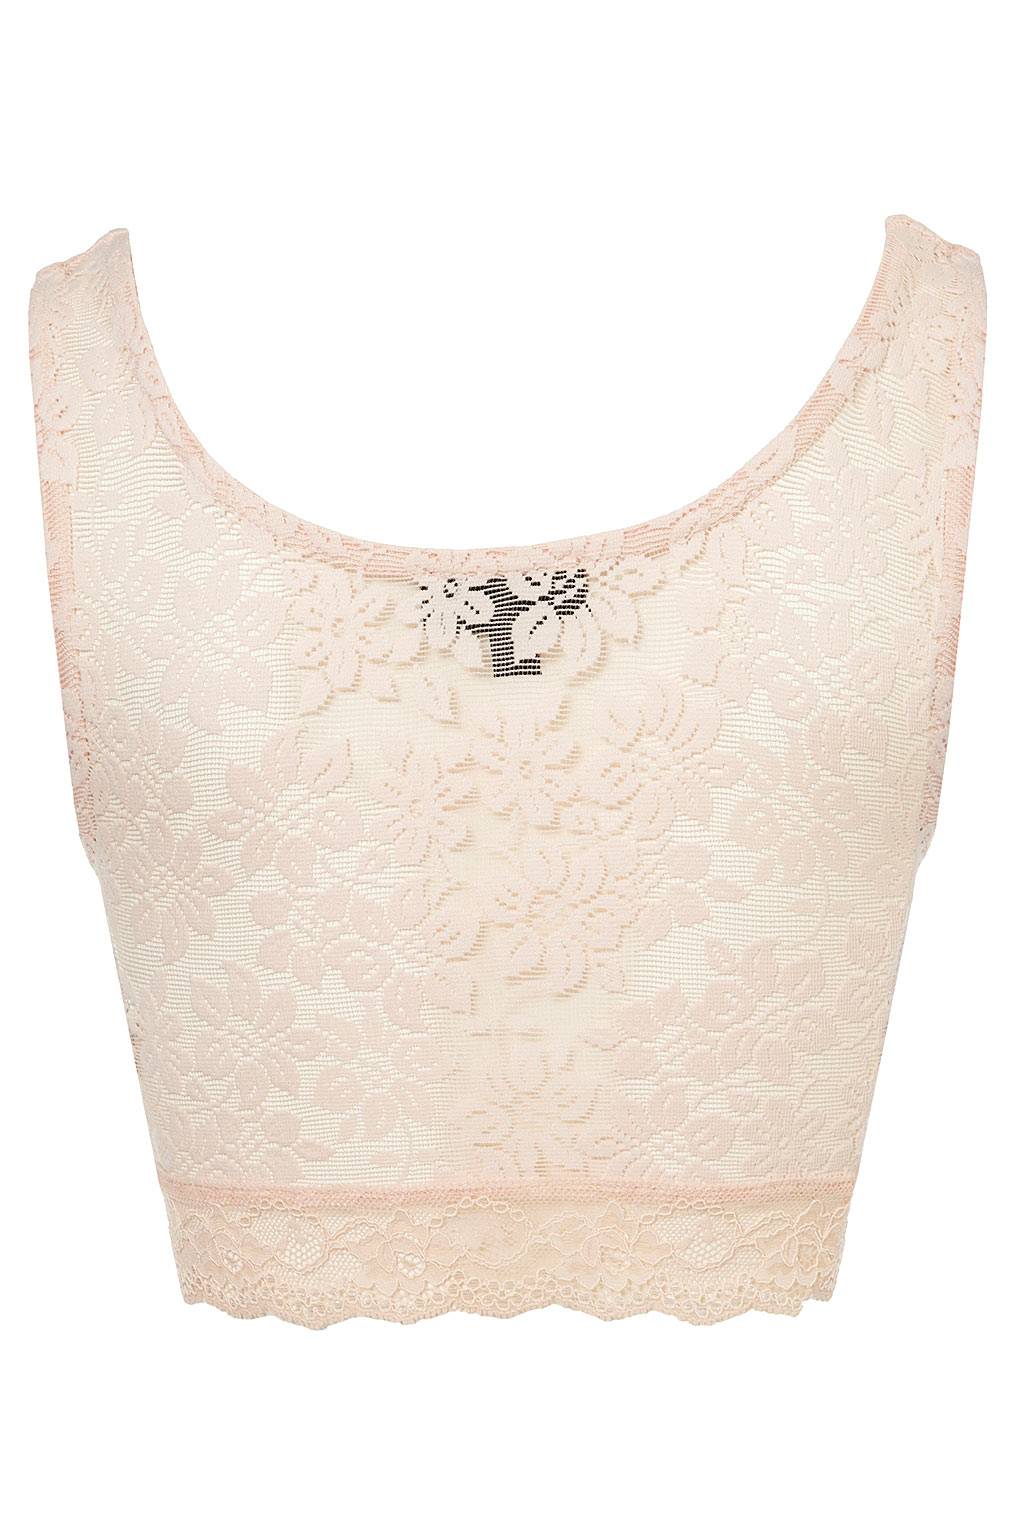 6b7f3f1138d Topshop White Lace Crop Top | Toffee Art